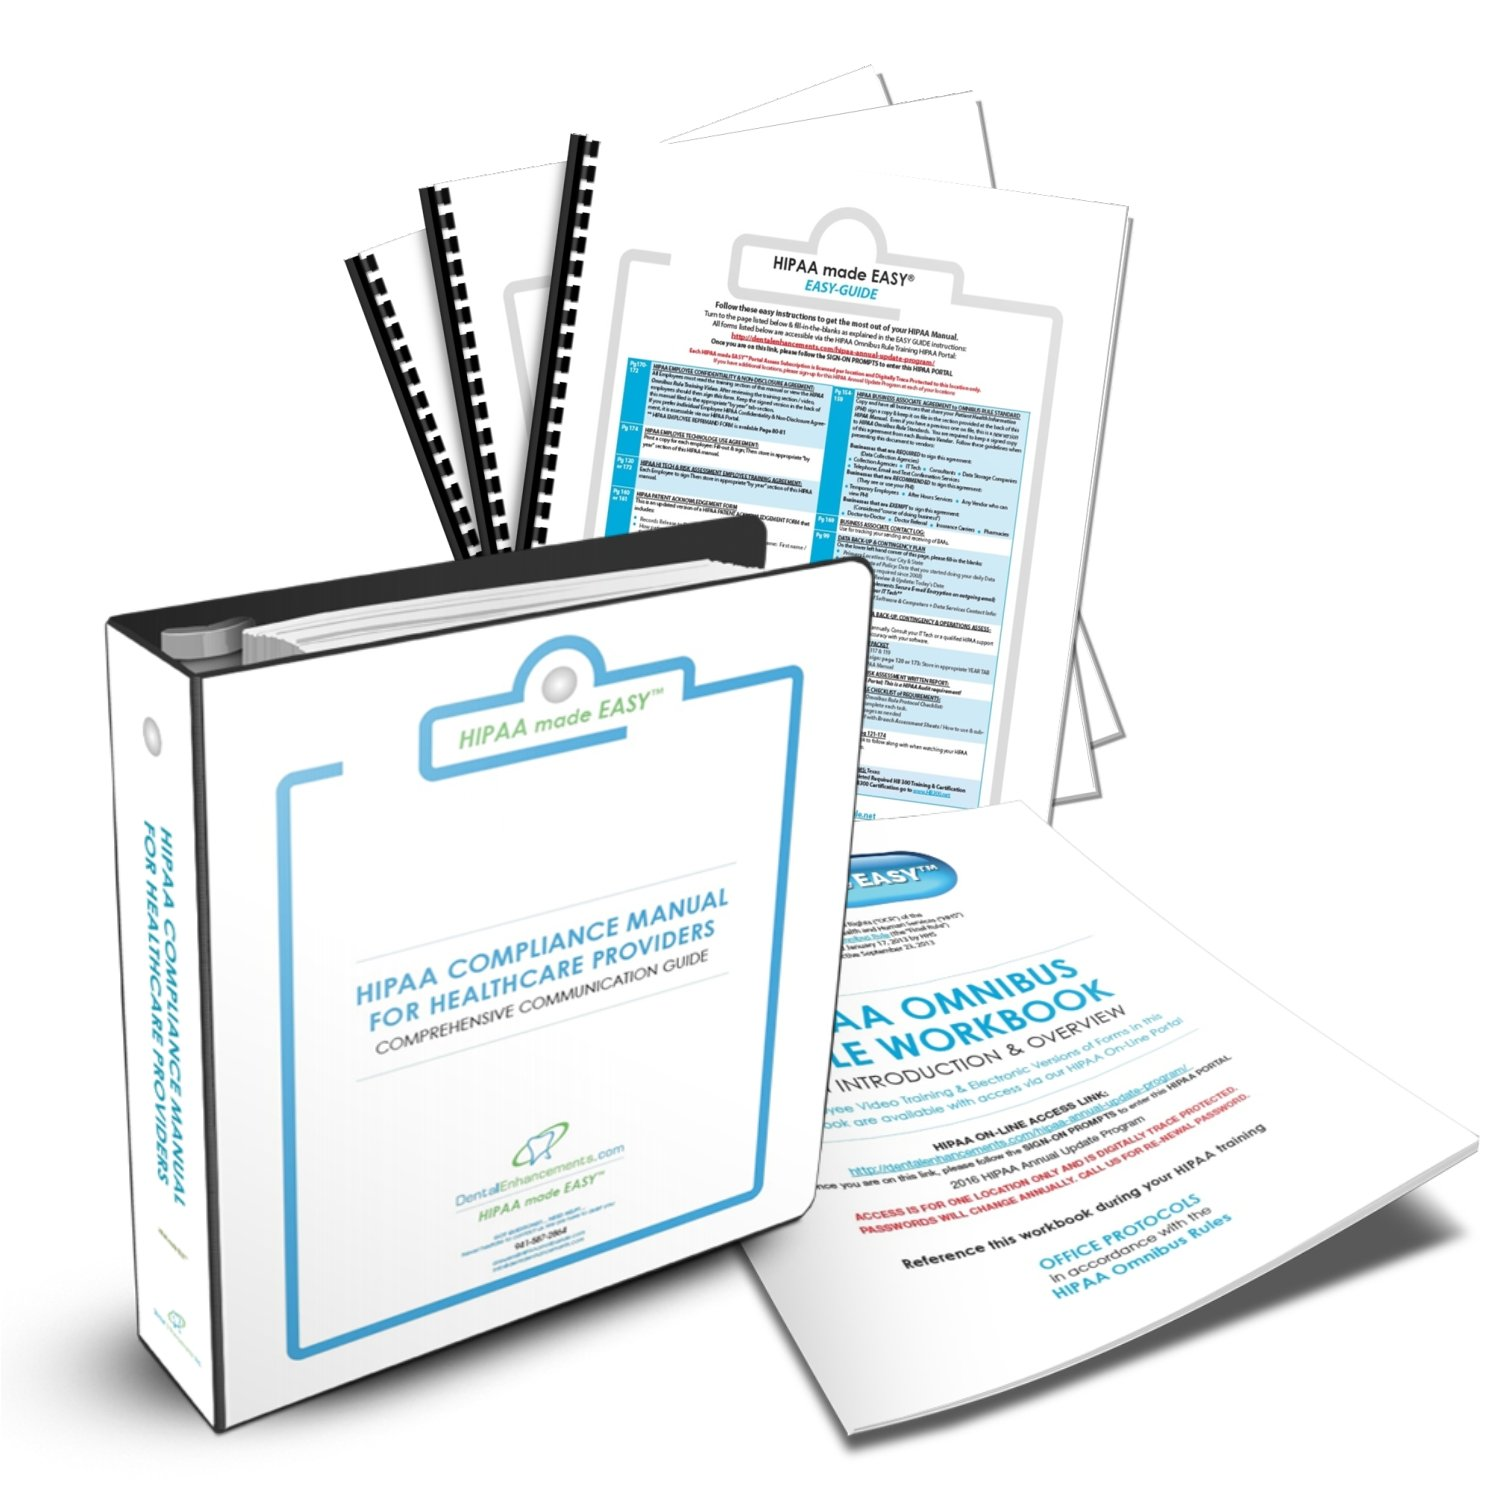 2019 HIPAA COMPLETE COMPLIANCE PKG By HIPAA Made EASY includes HIPAA Compliance Manual, Training Video, eForms to Omnibus Rule Hi Tech Standards by HIPAA made EASY